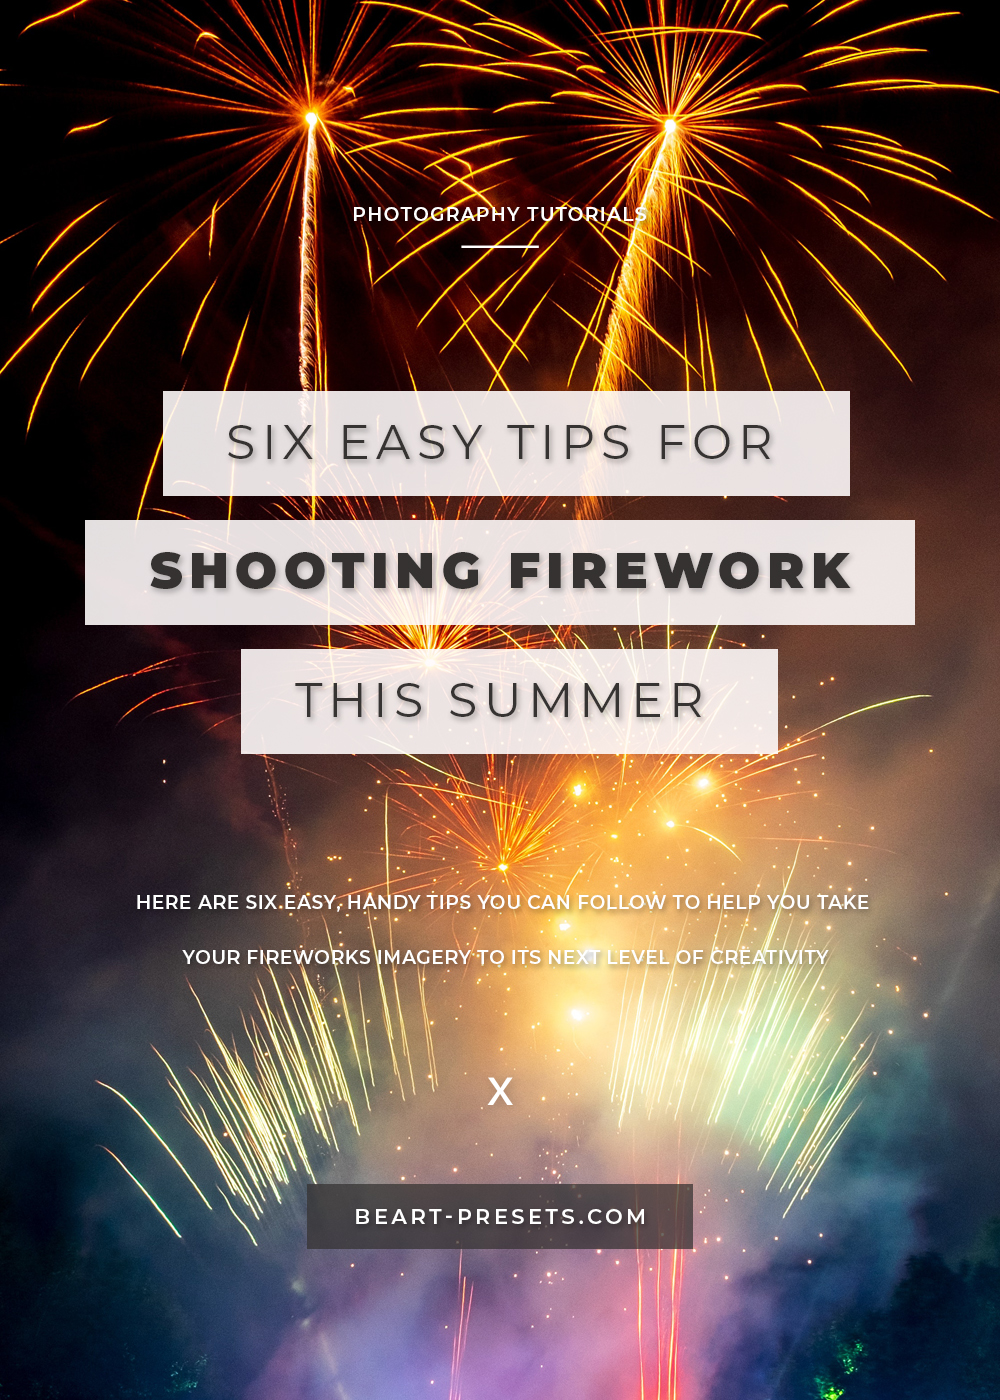 TIPS FOR SHOOTING FIREWORKS THIS SUMMER